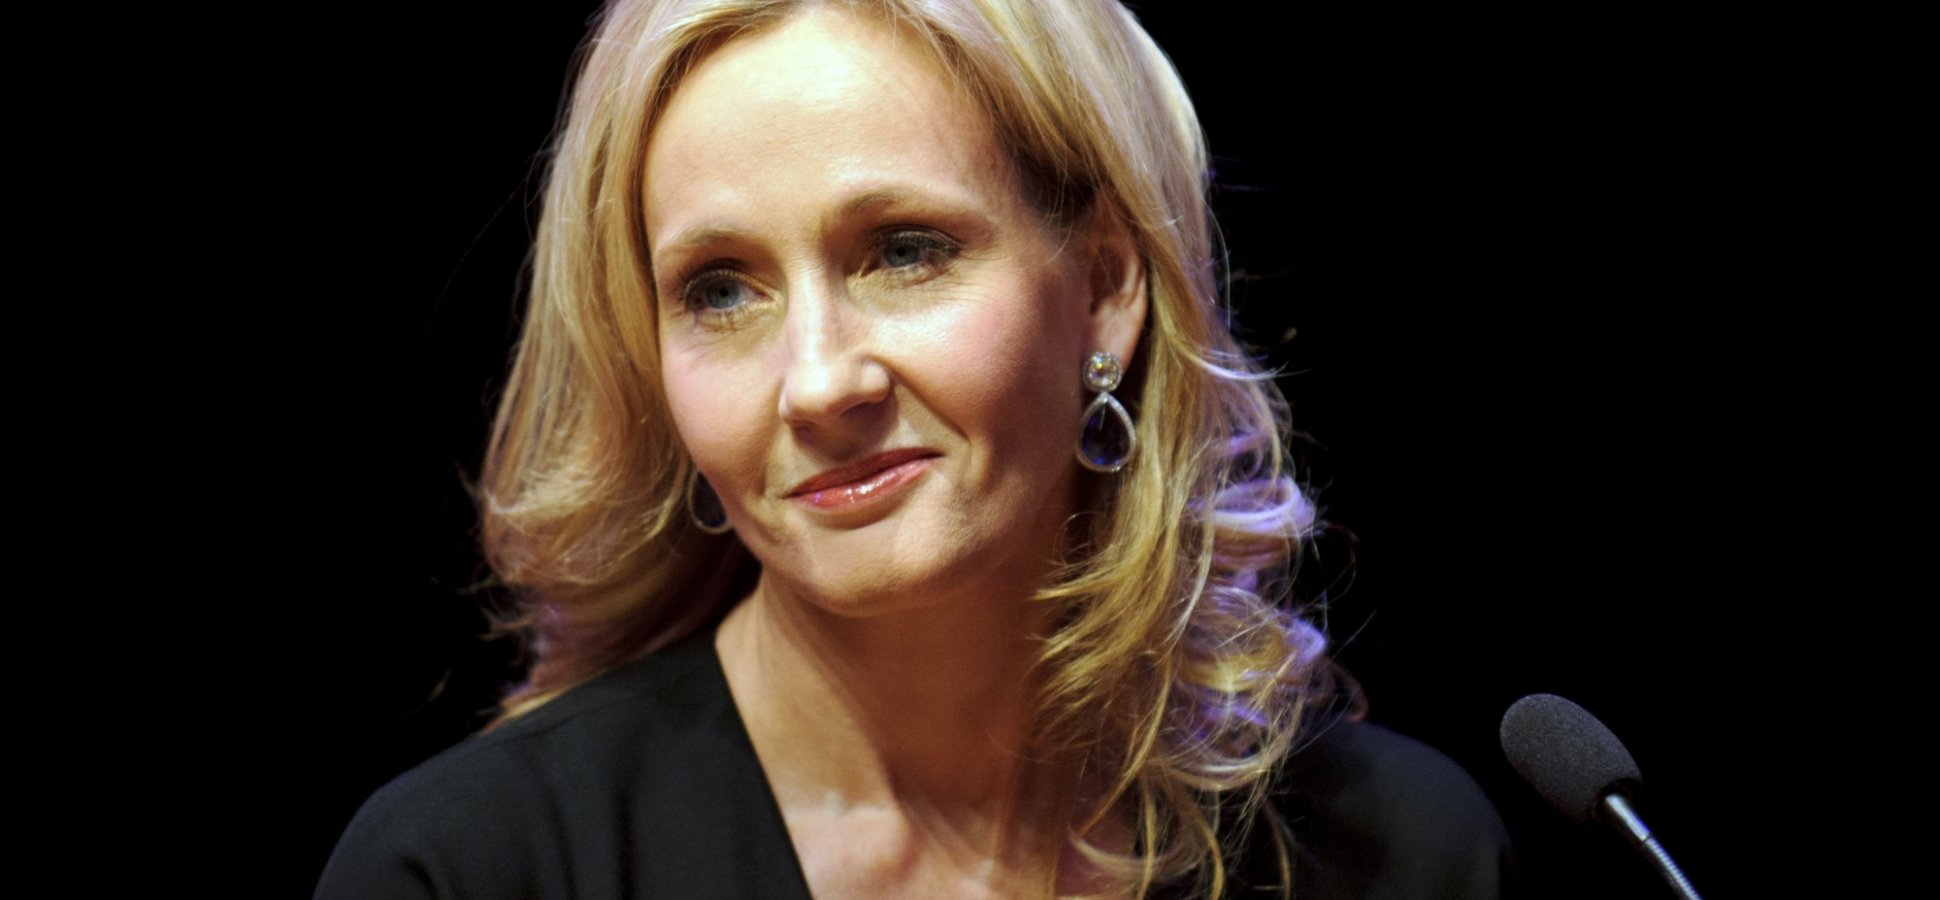 In Just 3 Words, J.K. Rowling Drops the Best Hot Take on Productivity You'll Read Today